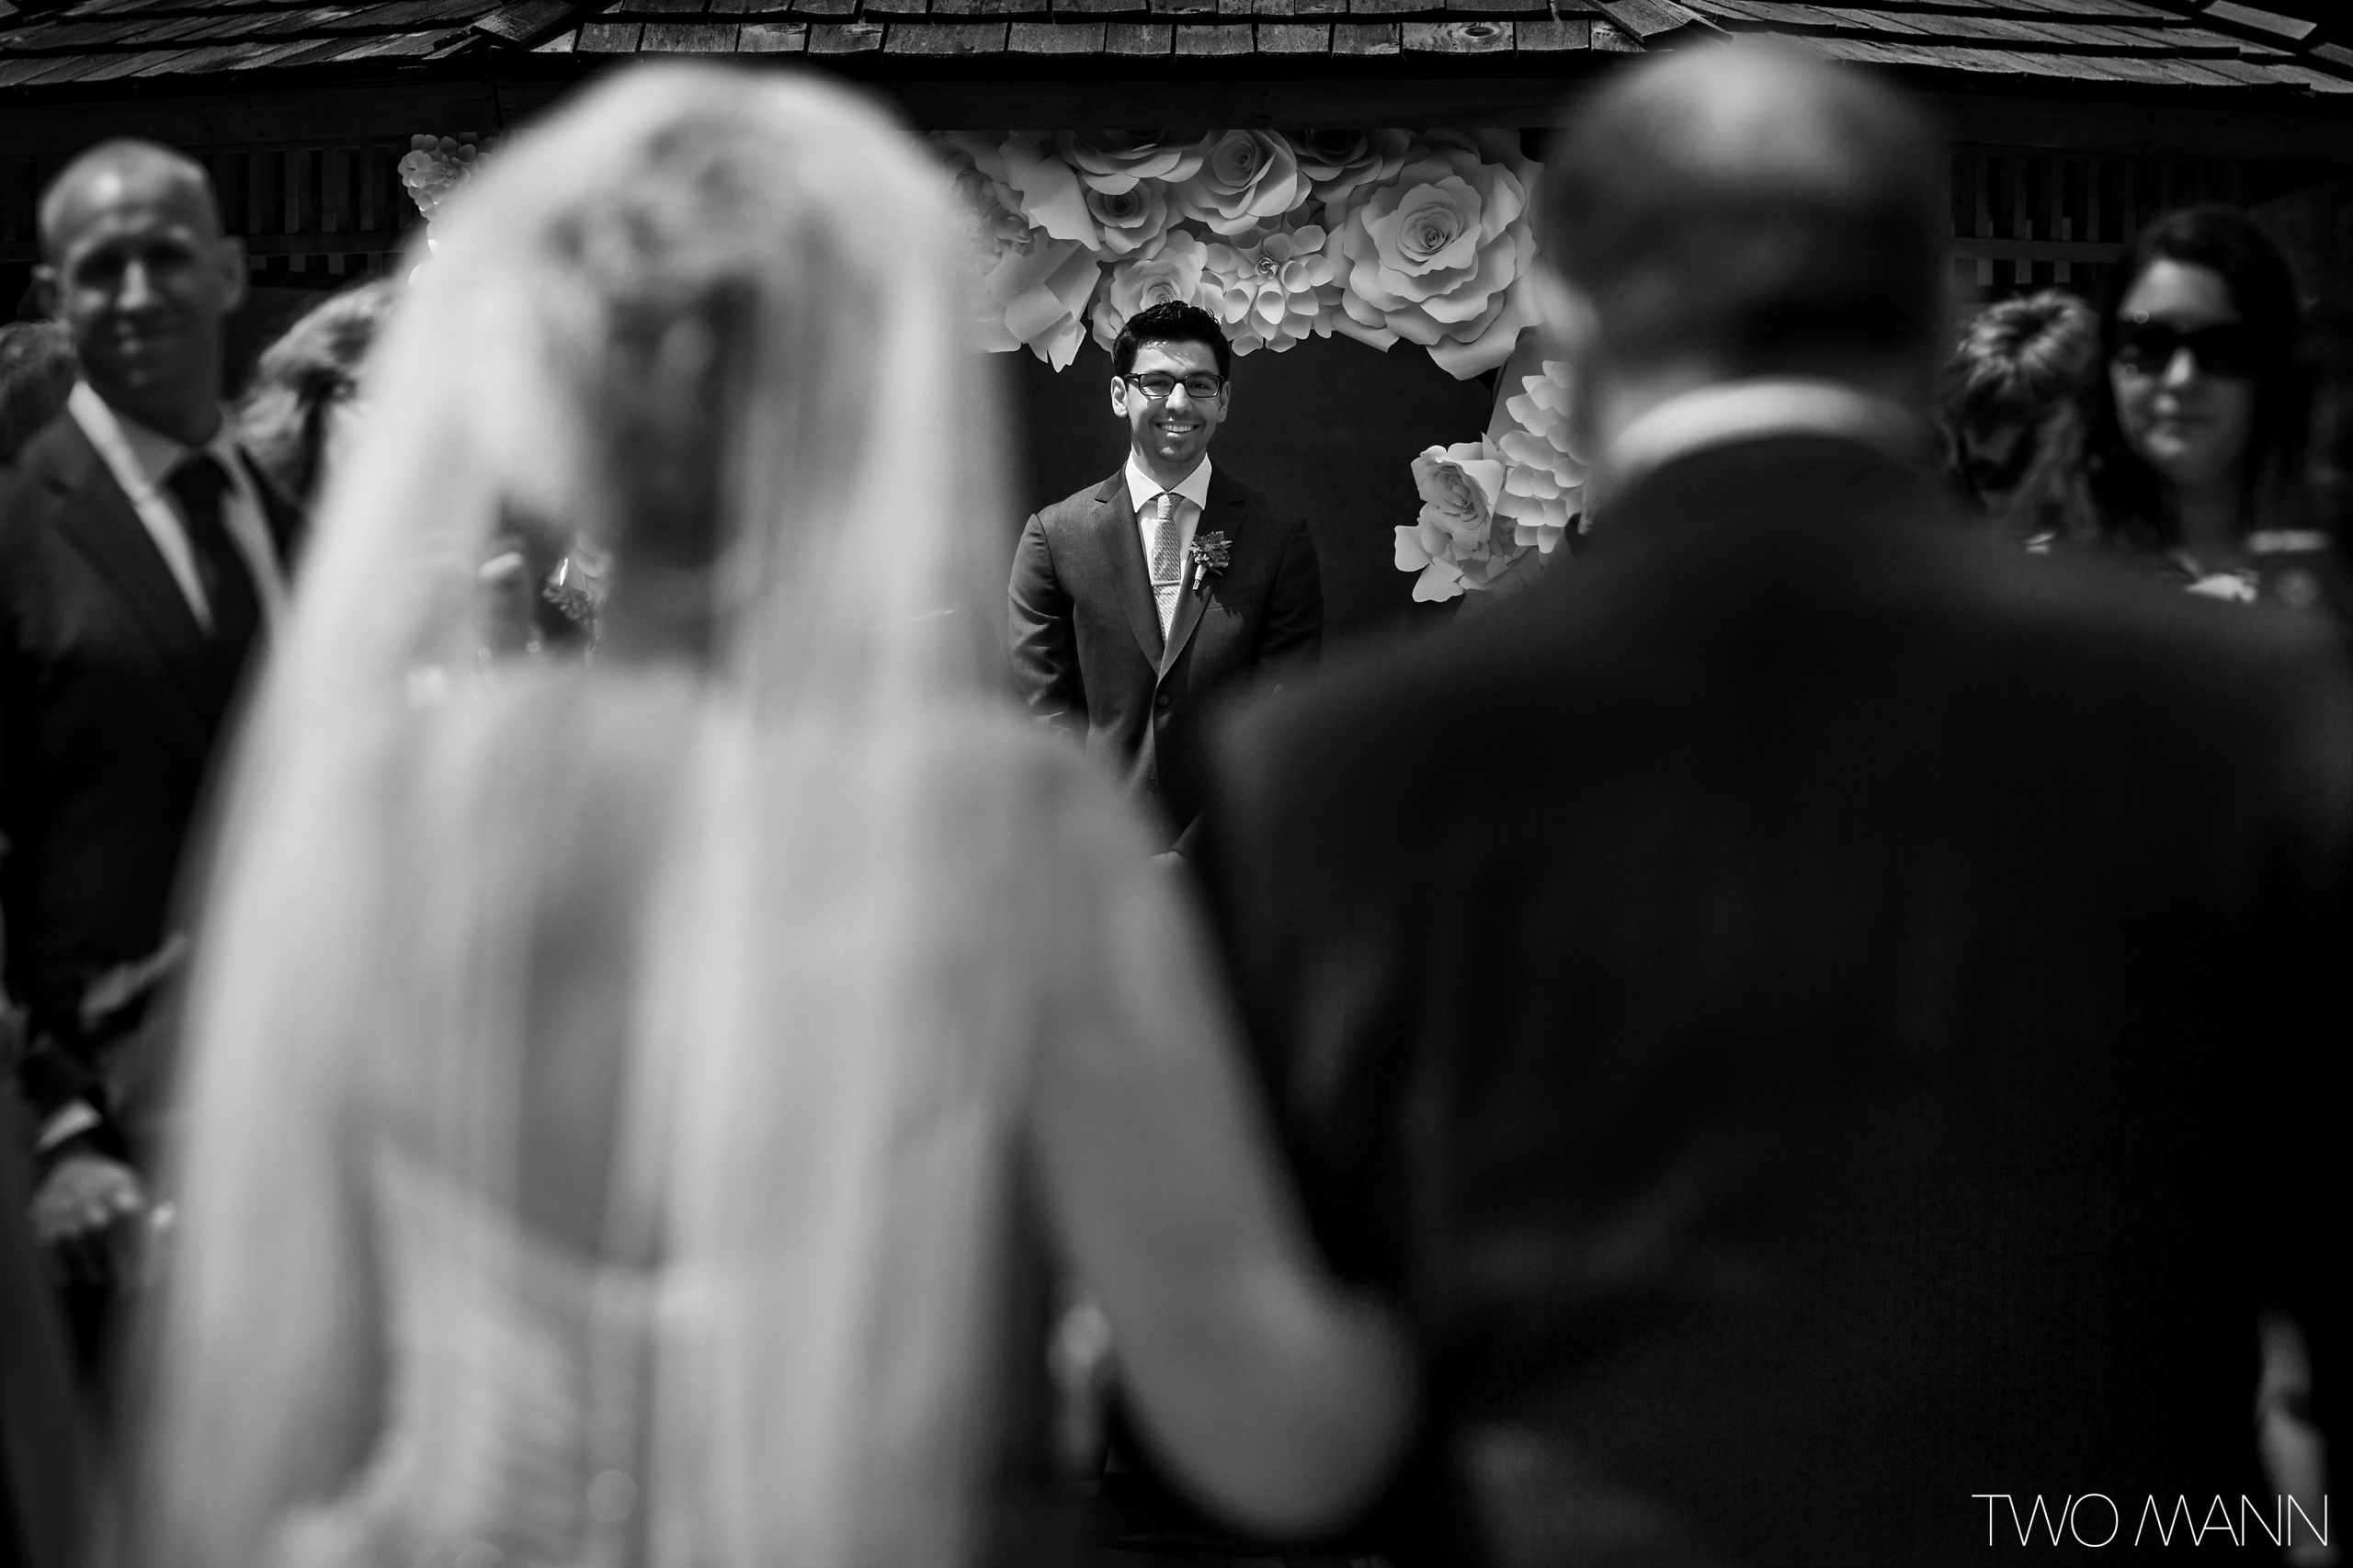 a groom waiting for his bride escorted by her father